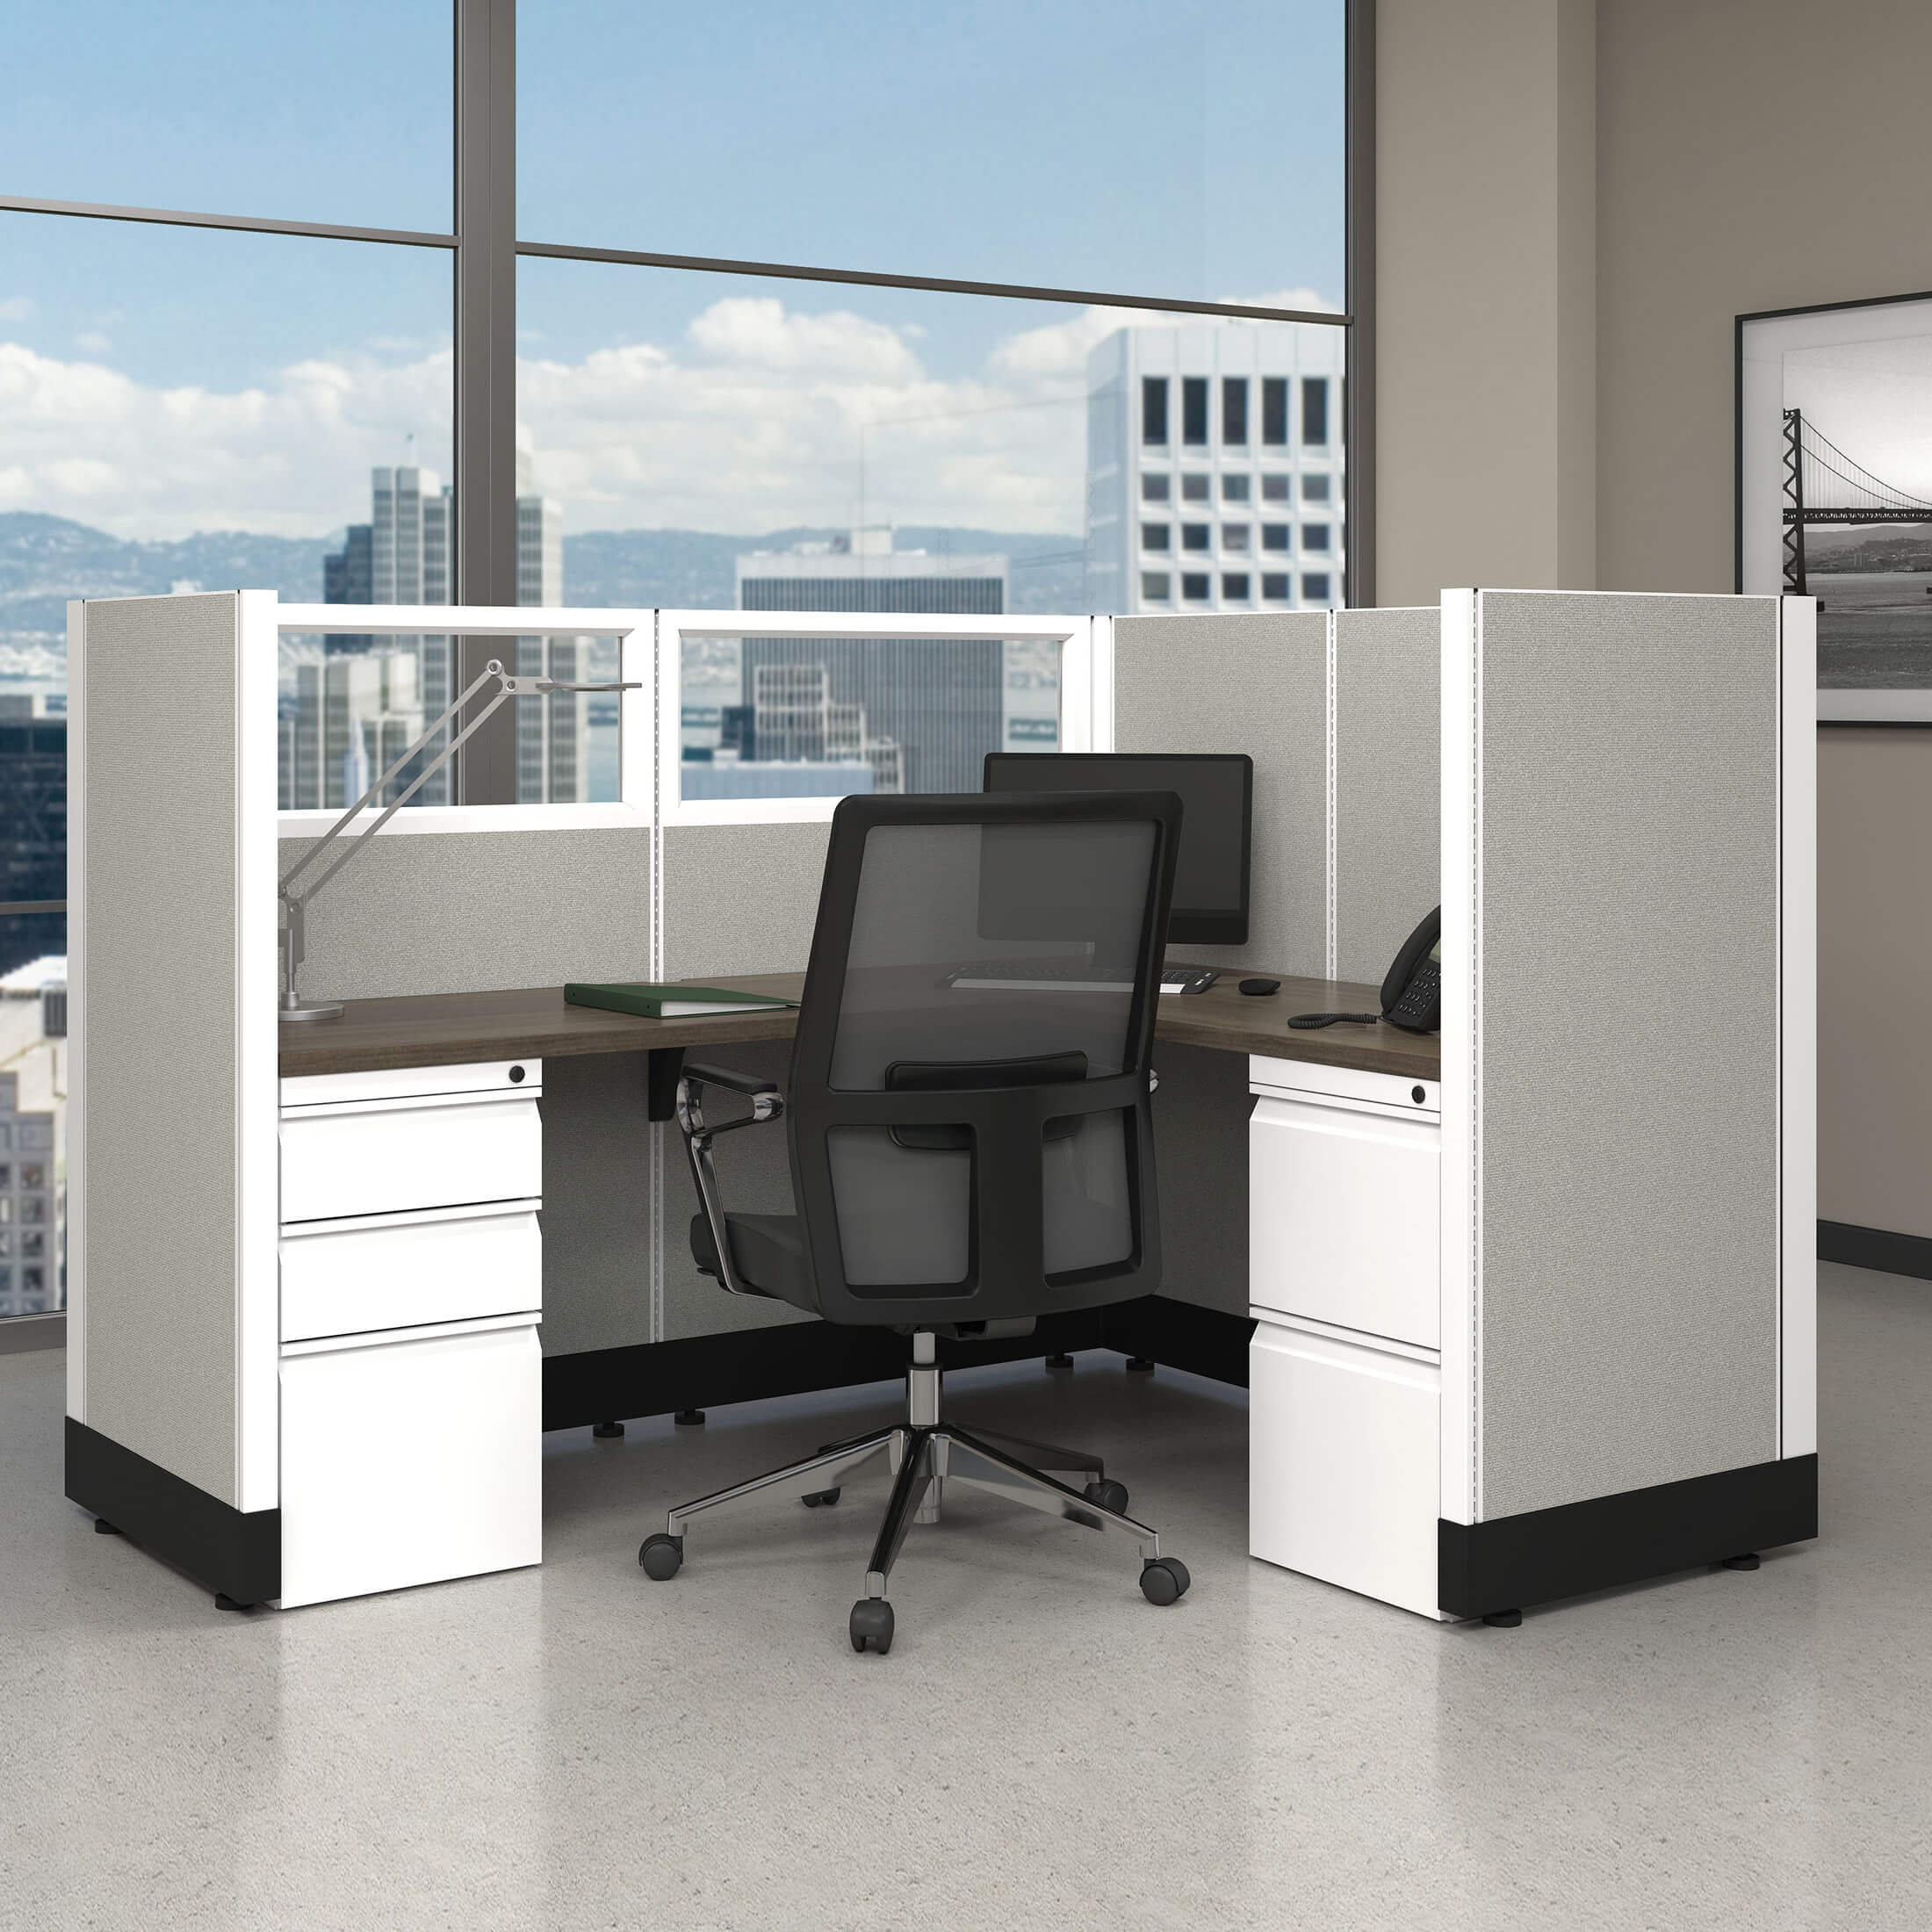 Office Furniture: Modular Office Furniture Systems 53H Powered